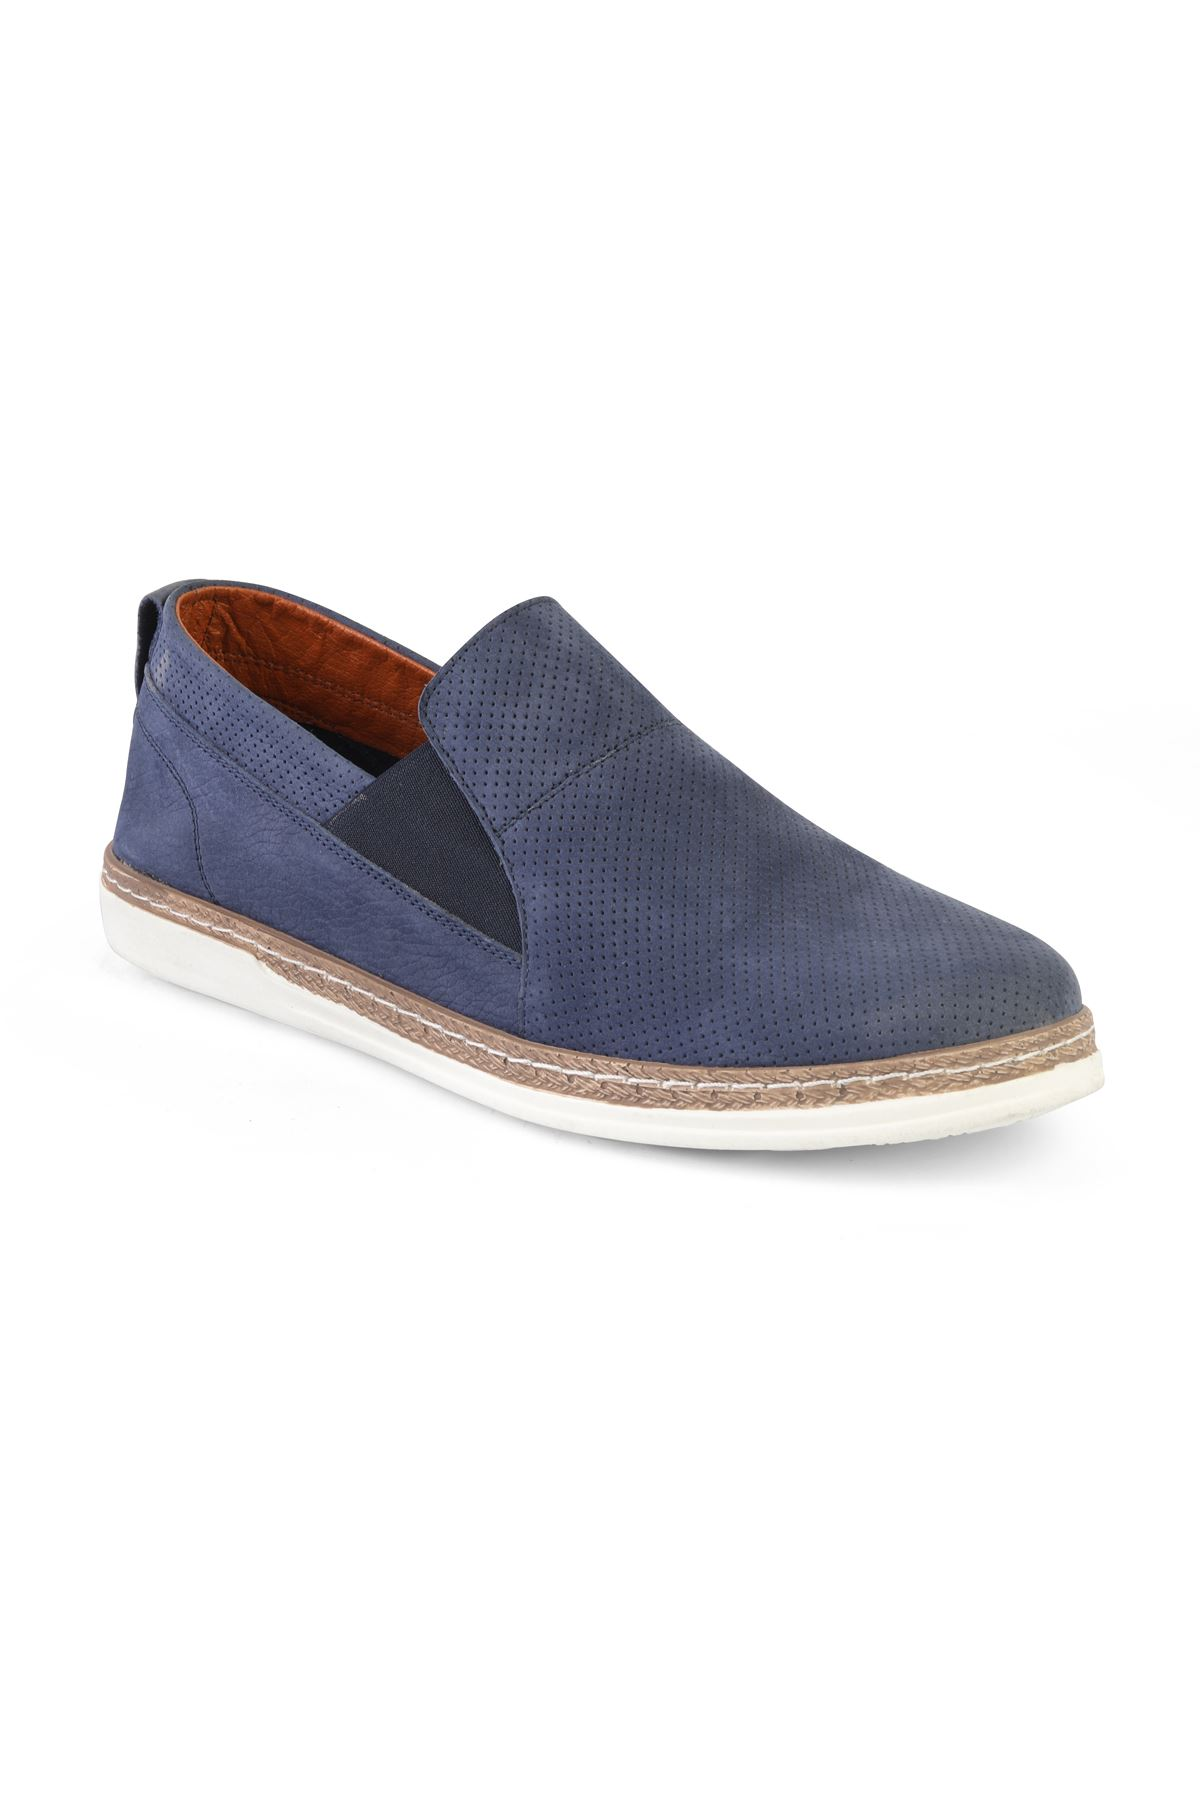 Libero T1232 Navy Blue Loafer Shoes